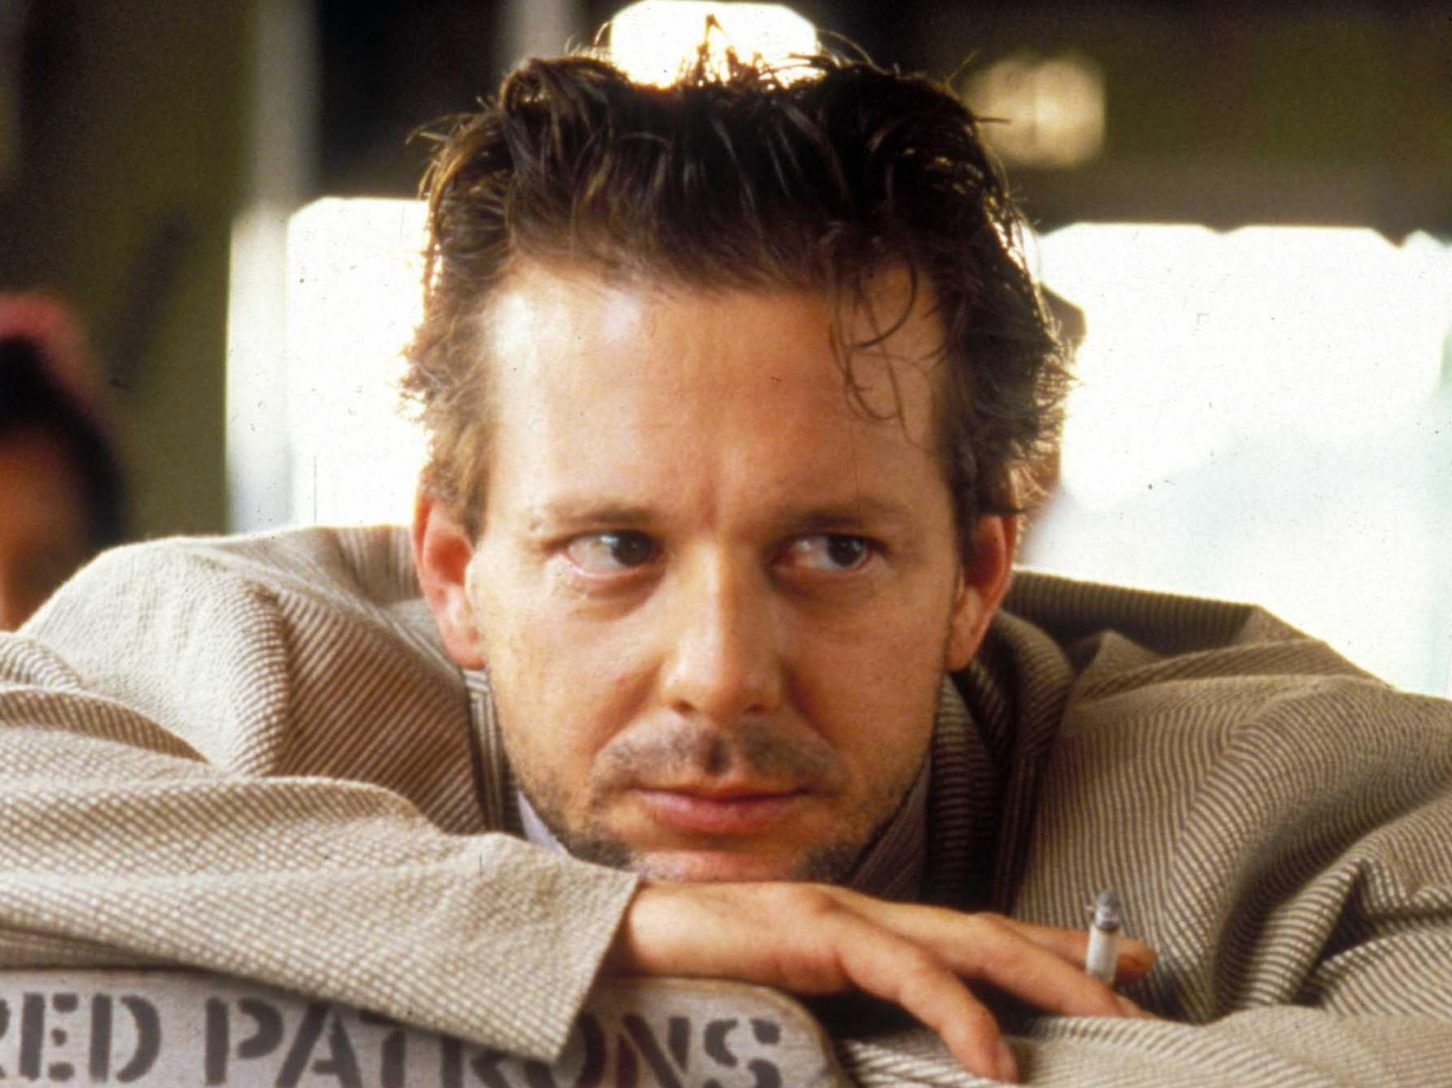 2Fmethode2Ftimes2Fprod2Fweb2Fbin2Fd3a8672a eb75 11e9 b931 c019e957f02a scaled e1625052674660 20 Things You Never Knew About Mickey Rourke